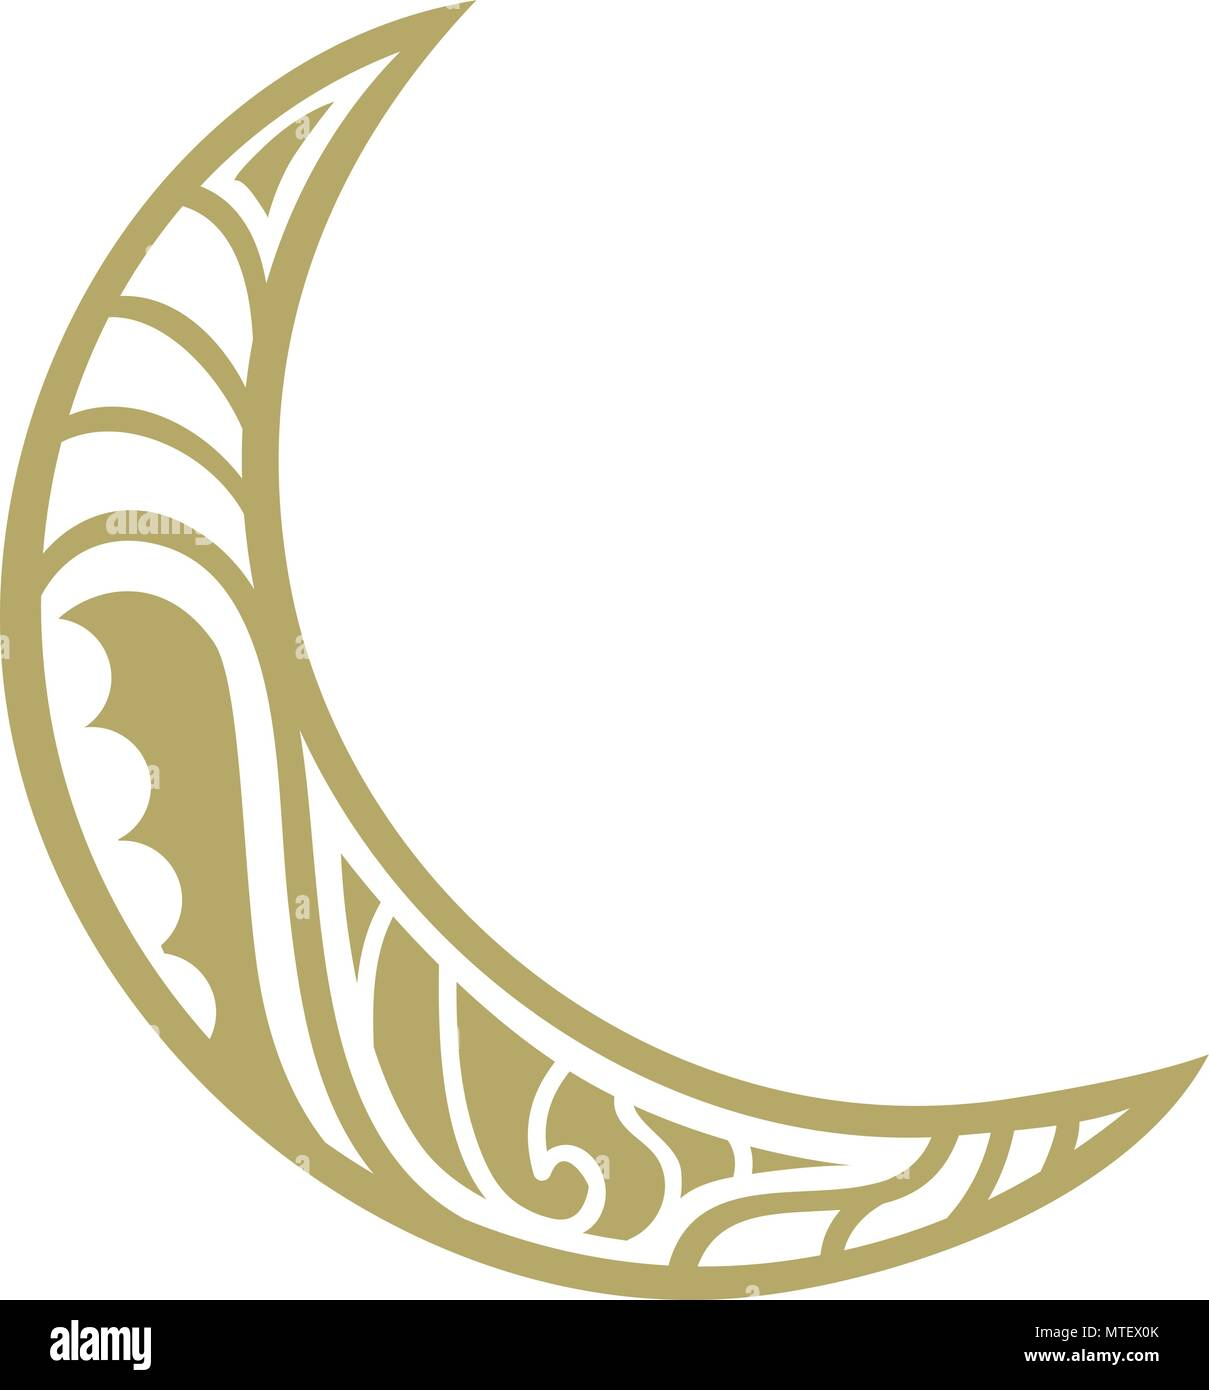 Maori greeting stock vector images alamy ornamental crescent moon logo stock vector m4hsunfo